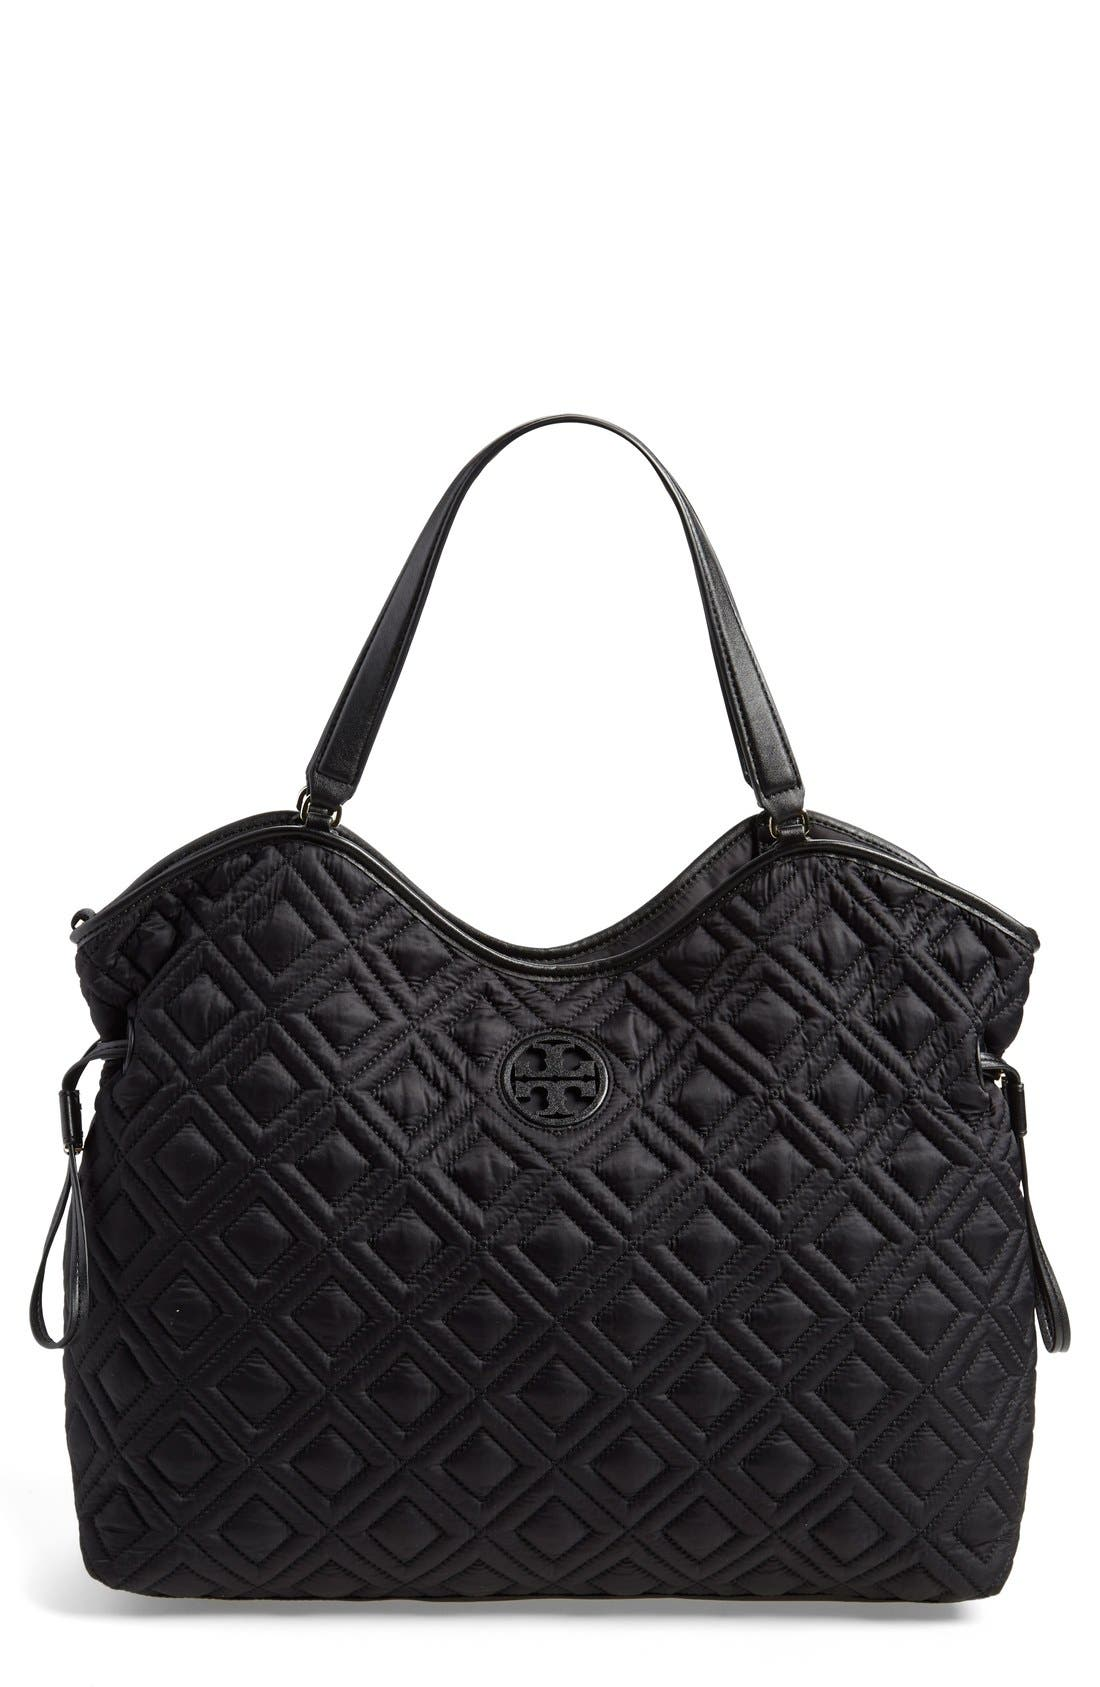 Alternate Image 1 Selected - Tory Burch Quilted Slouchy Baby Bag